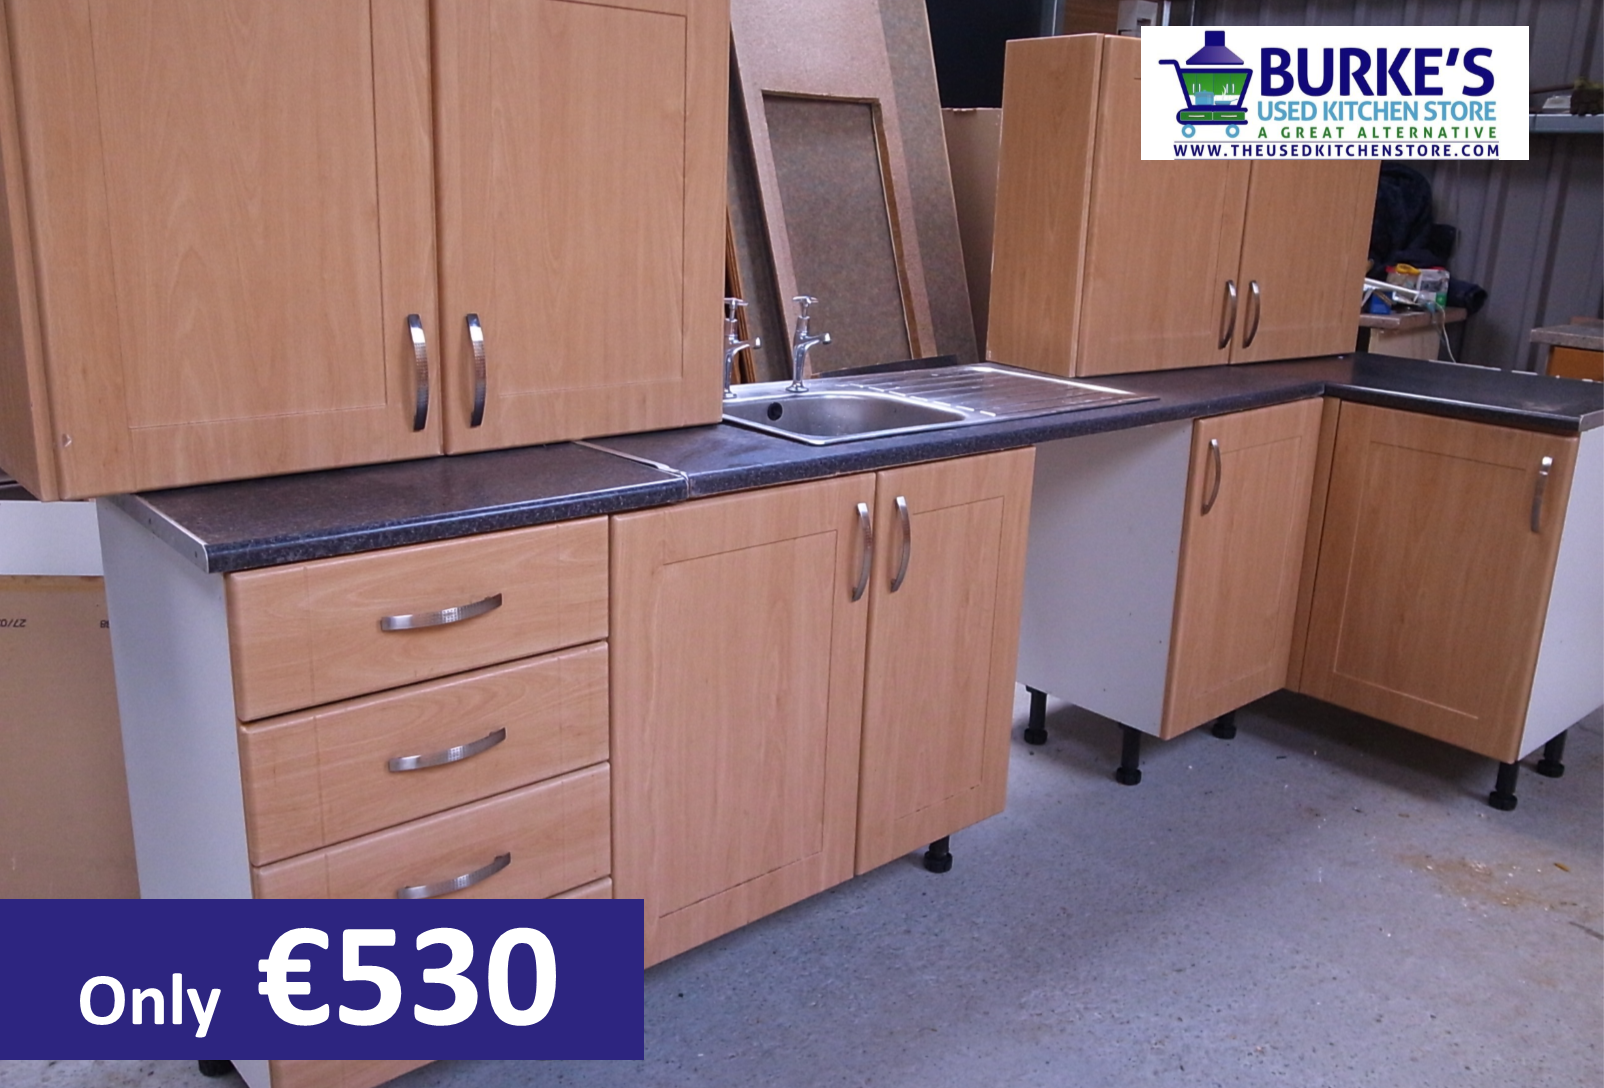 Sold For Sale Modern Maple Effect Kitchen With Sink Only 530 The Used Kitchen Store